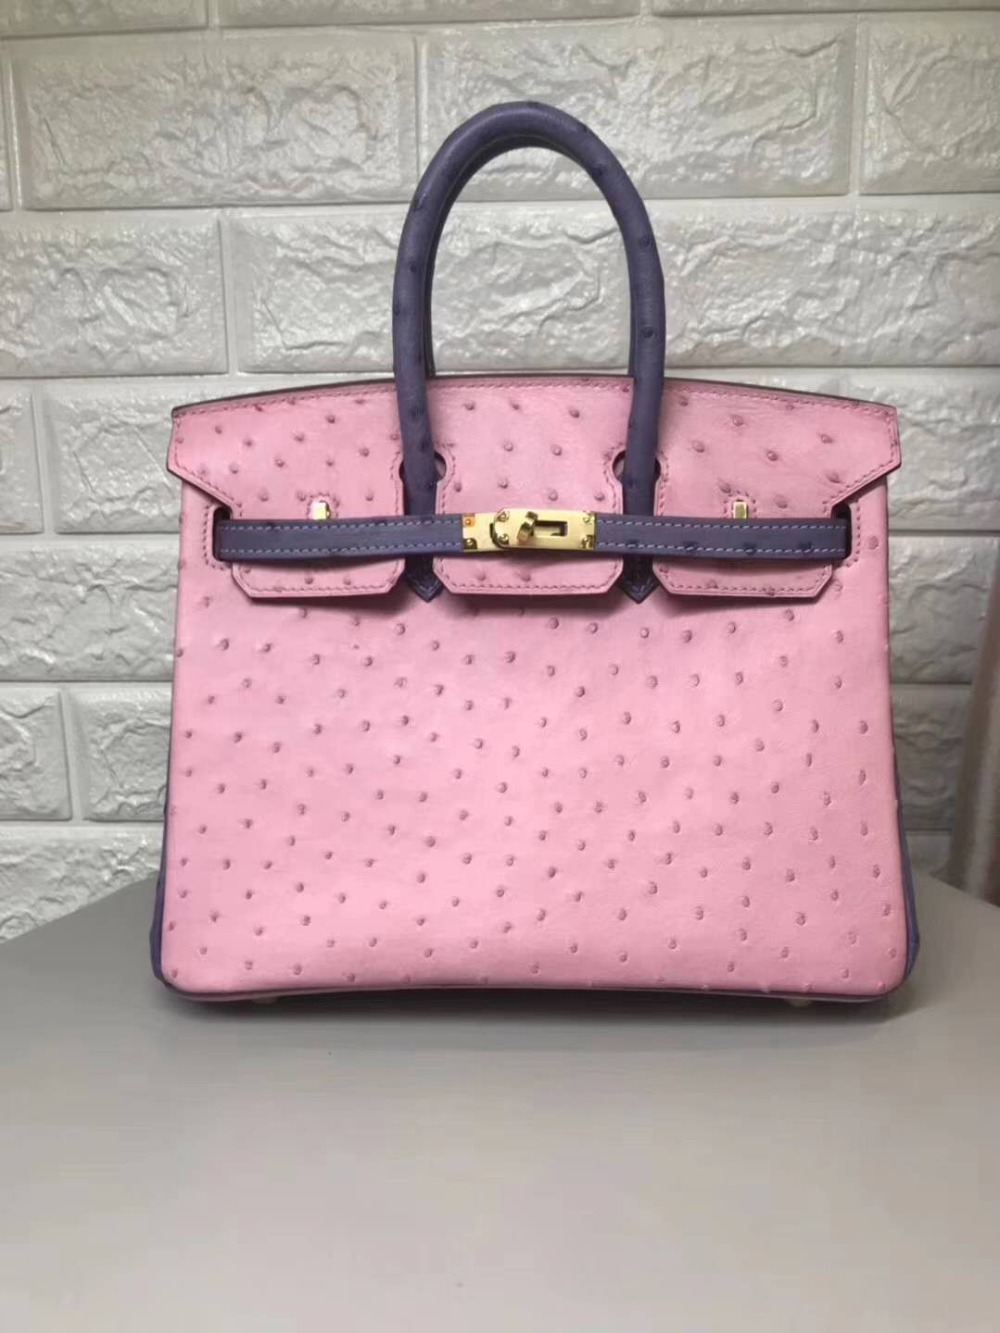 Top Luxury quality 100% genuine real ostrich skin women tote bag 25cm pink purple color ostrich skin small size tote bag ladyTop Luxury quality 100% genuine real ostrich skin women tote bag 25cm pink purple color ostrich skin small size tote bag lady